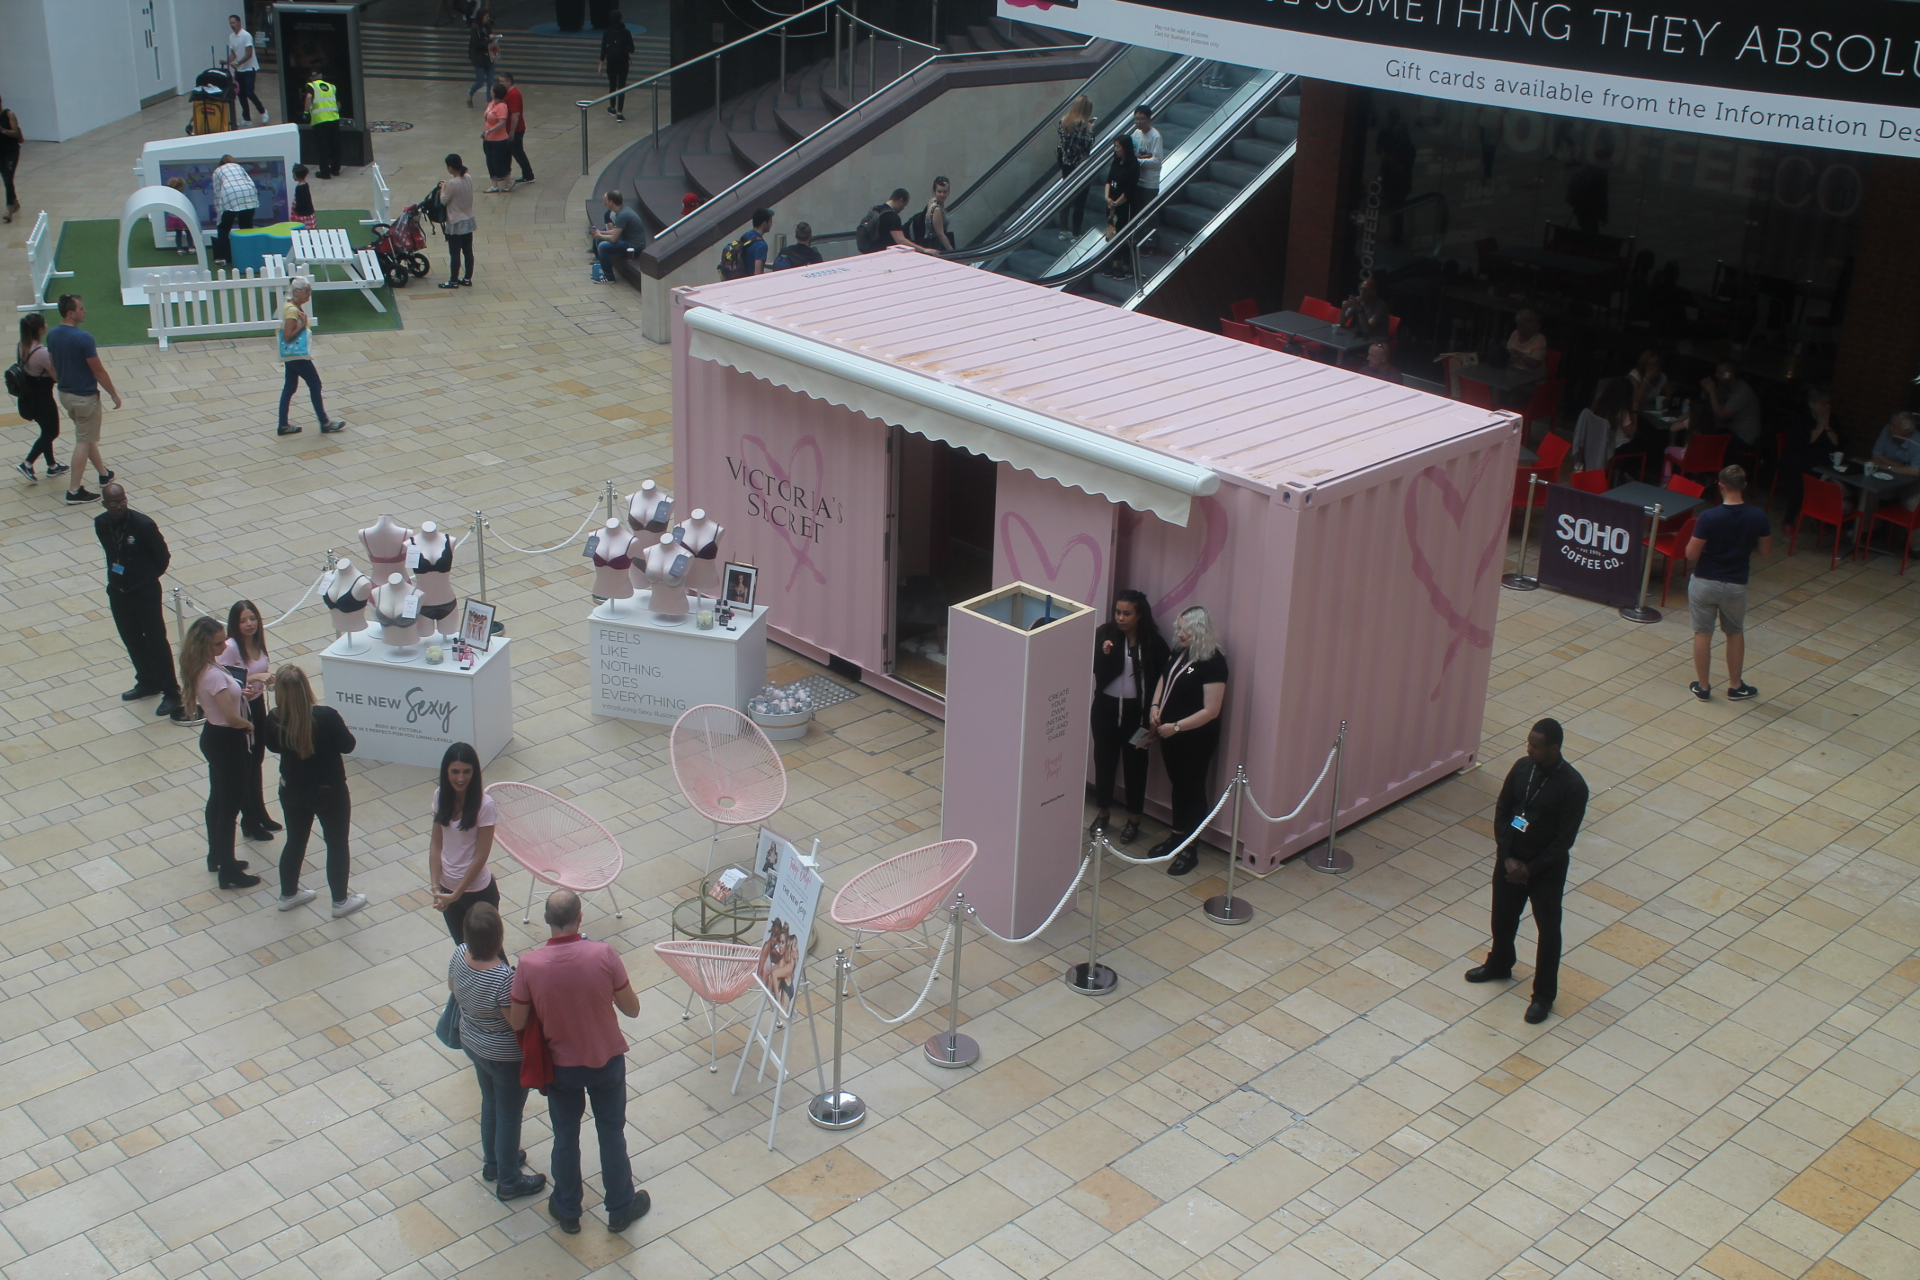 Creative Spaces help Victoria's Secret embrace pop-up retail & brand experience